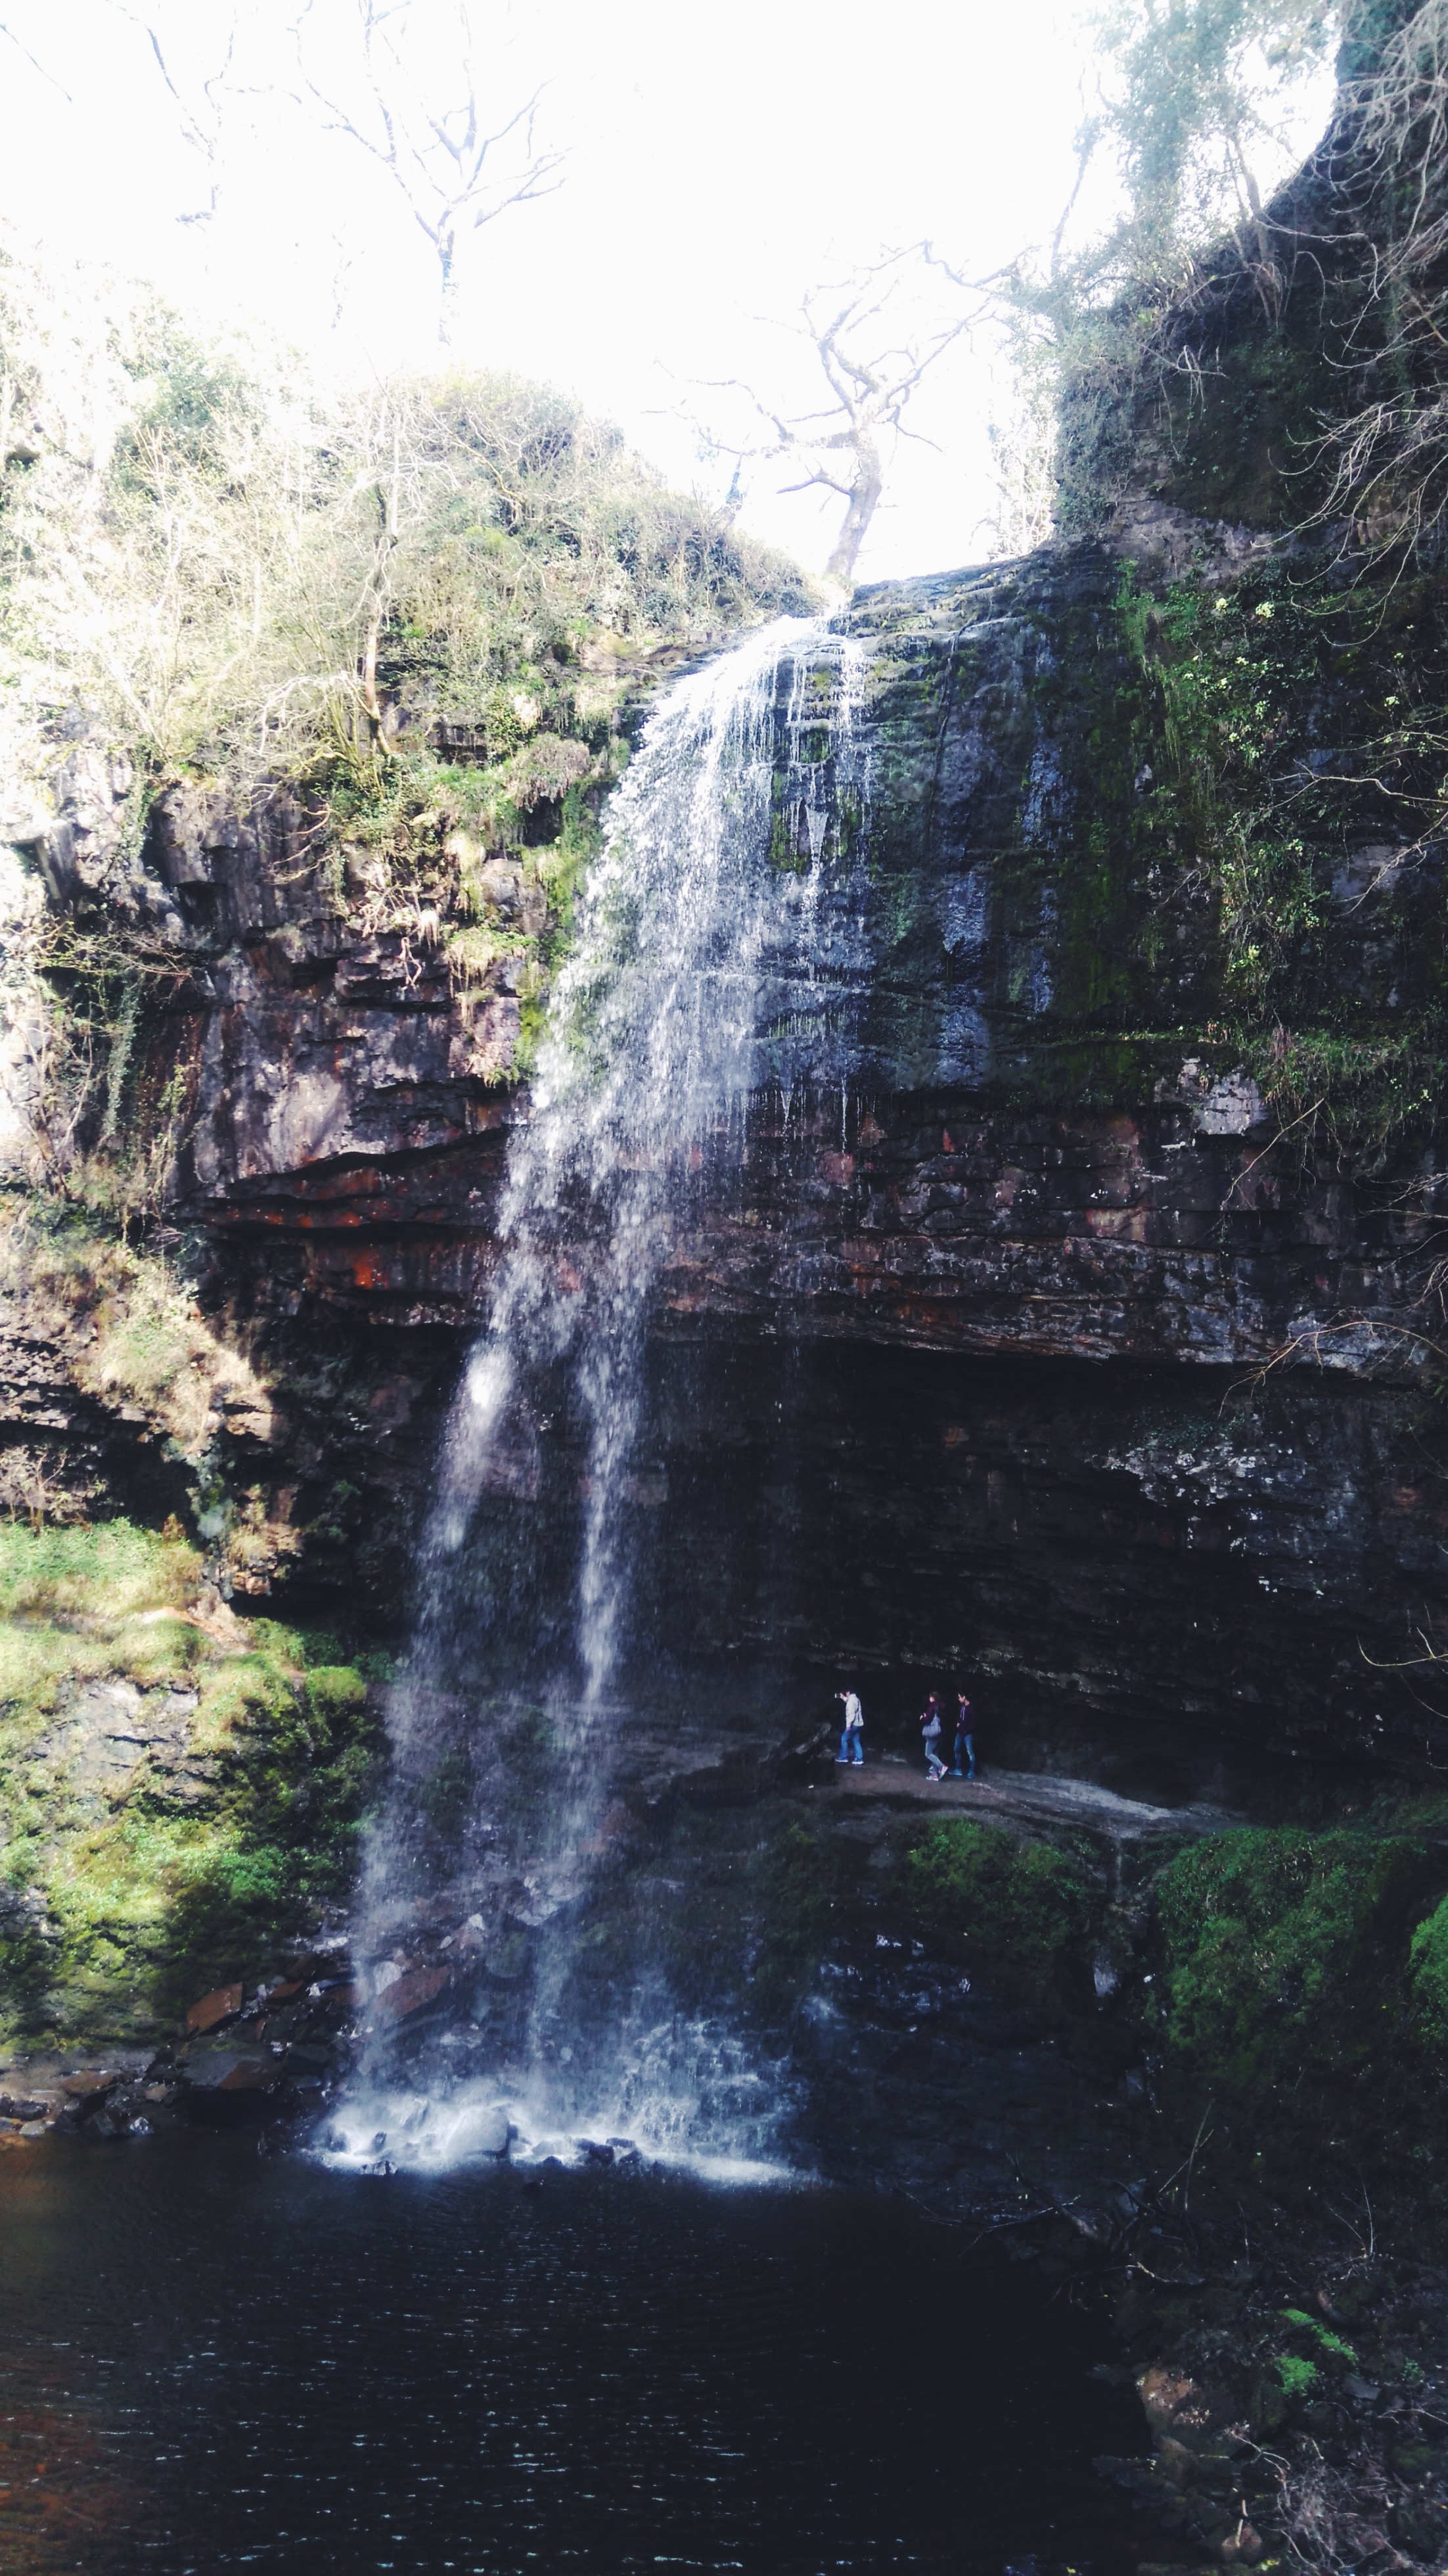 Real Wales Tour guests exploring Henrhyd Falls in the Brecon Beacons